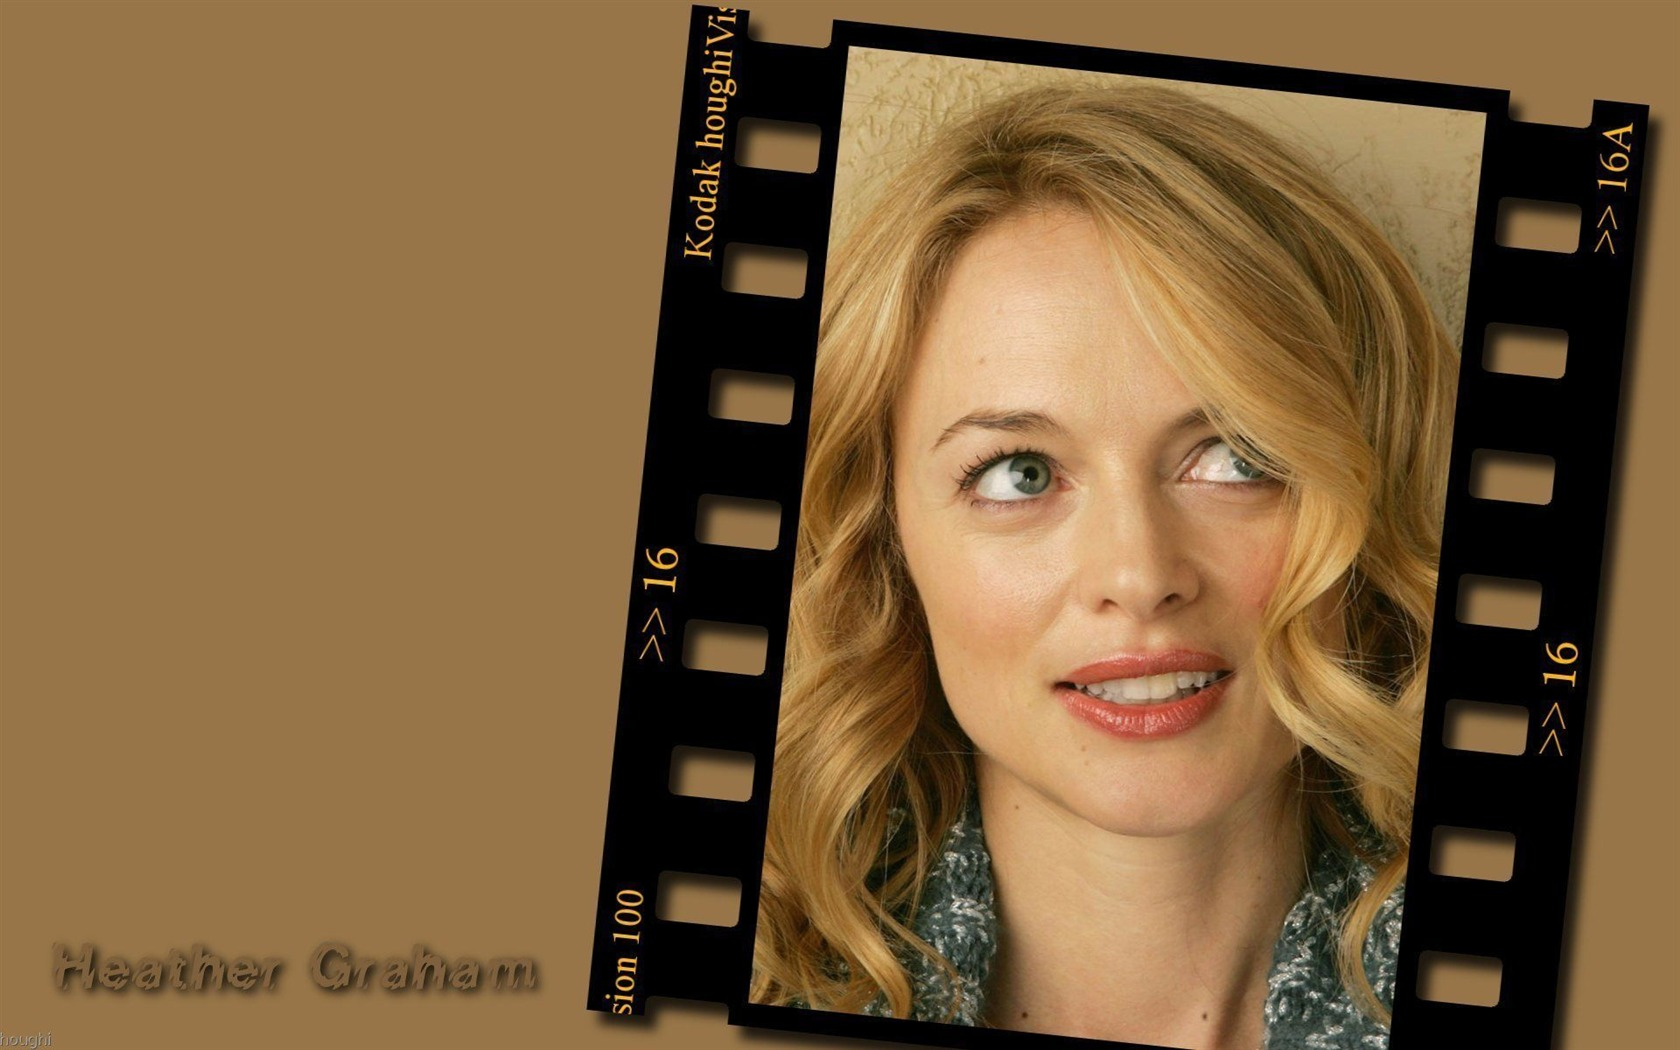 Heather Graham #005 - 1680x1050 Wallpapers Pictures Photos Images